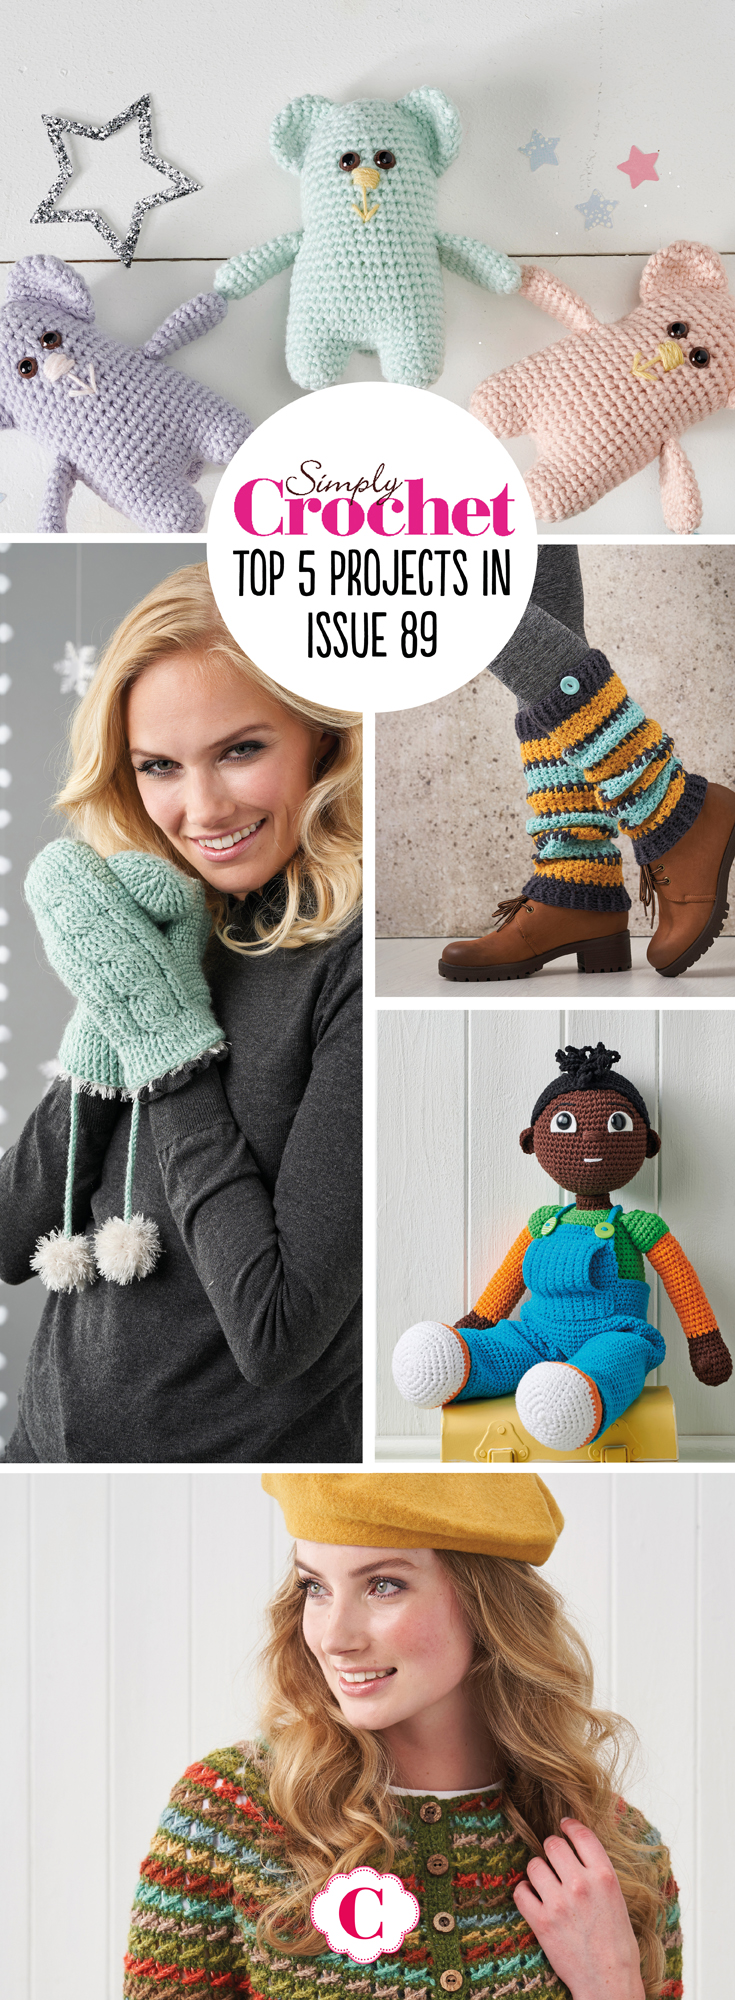 Simply_Crochet_issue89_Top5_pin